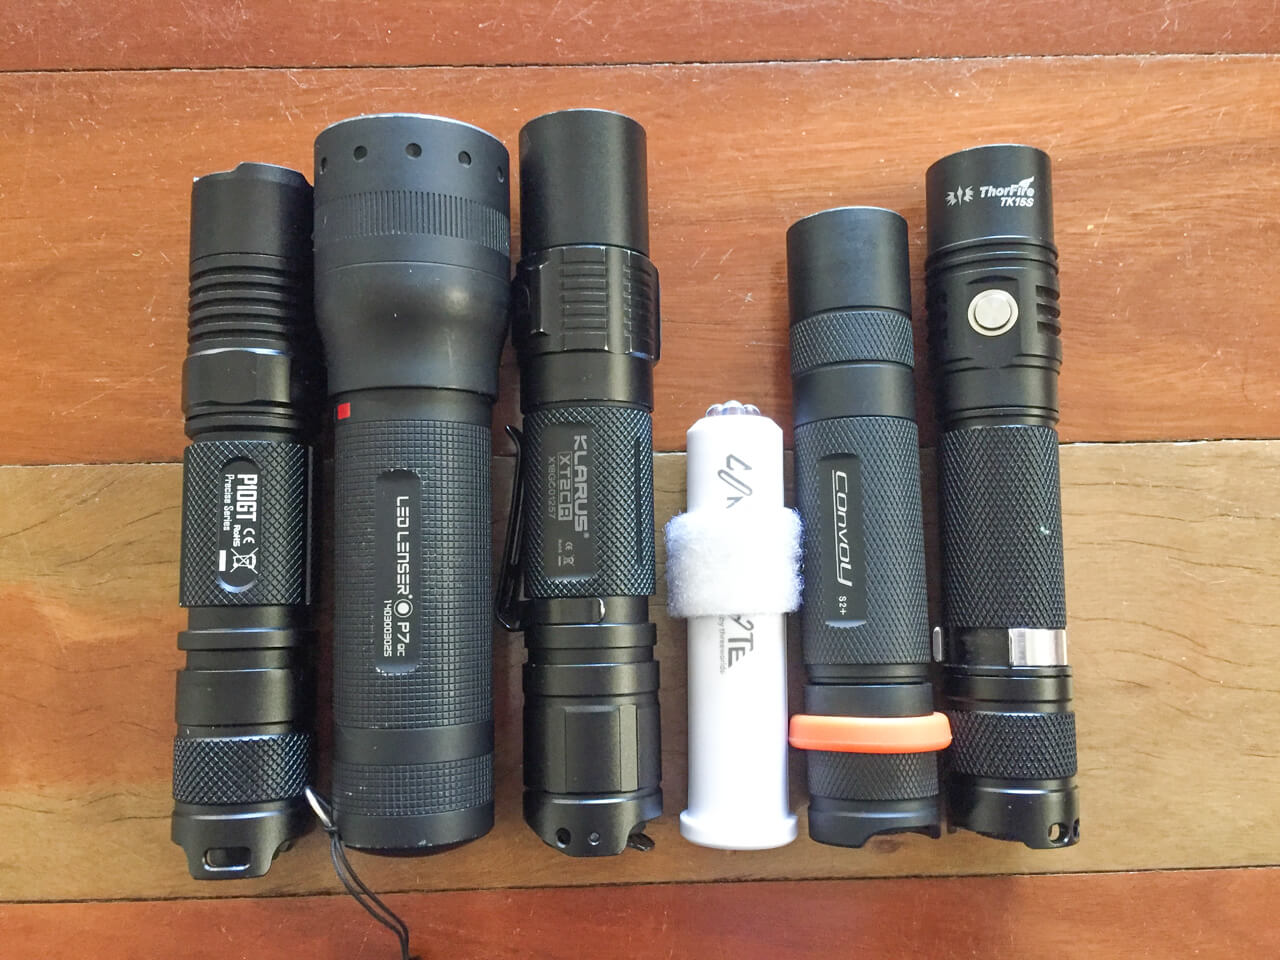 Selection of flashlights